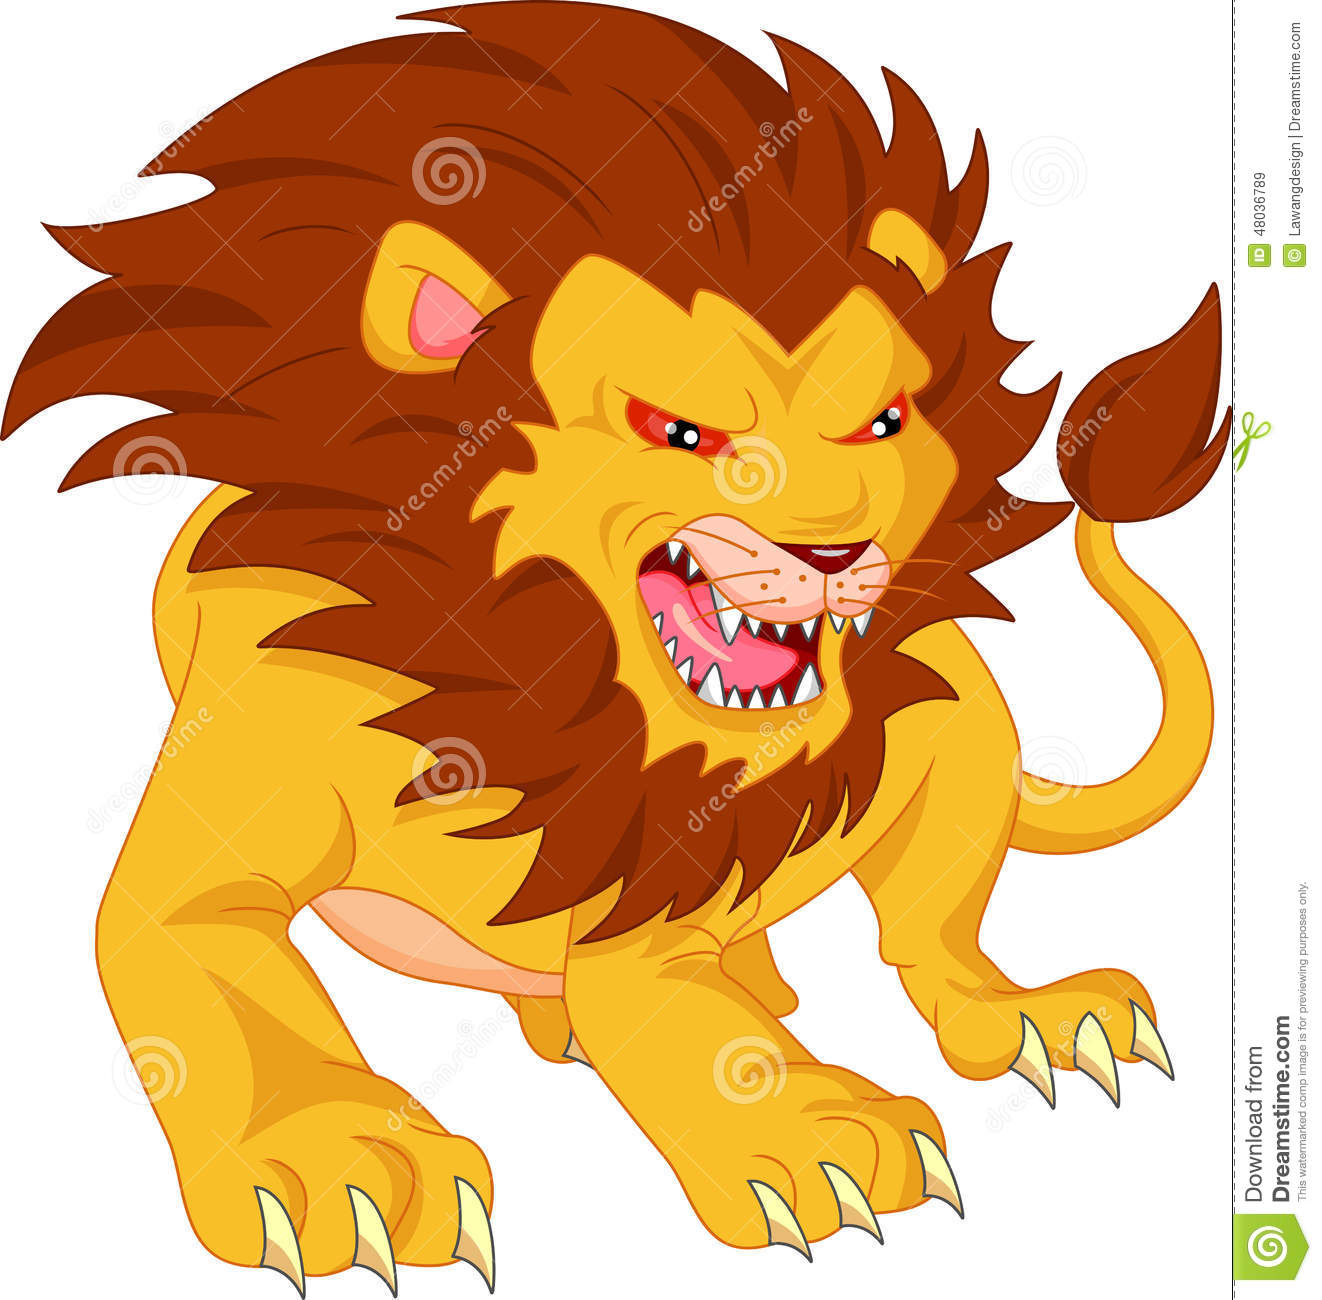 Angry lion cartoon stock vector. Illustration of cute - 48036789 for Angry Lion Animation  110ylc